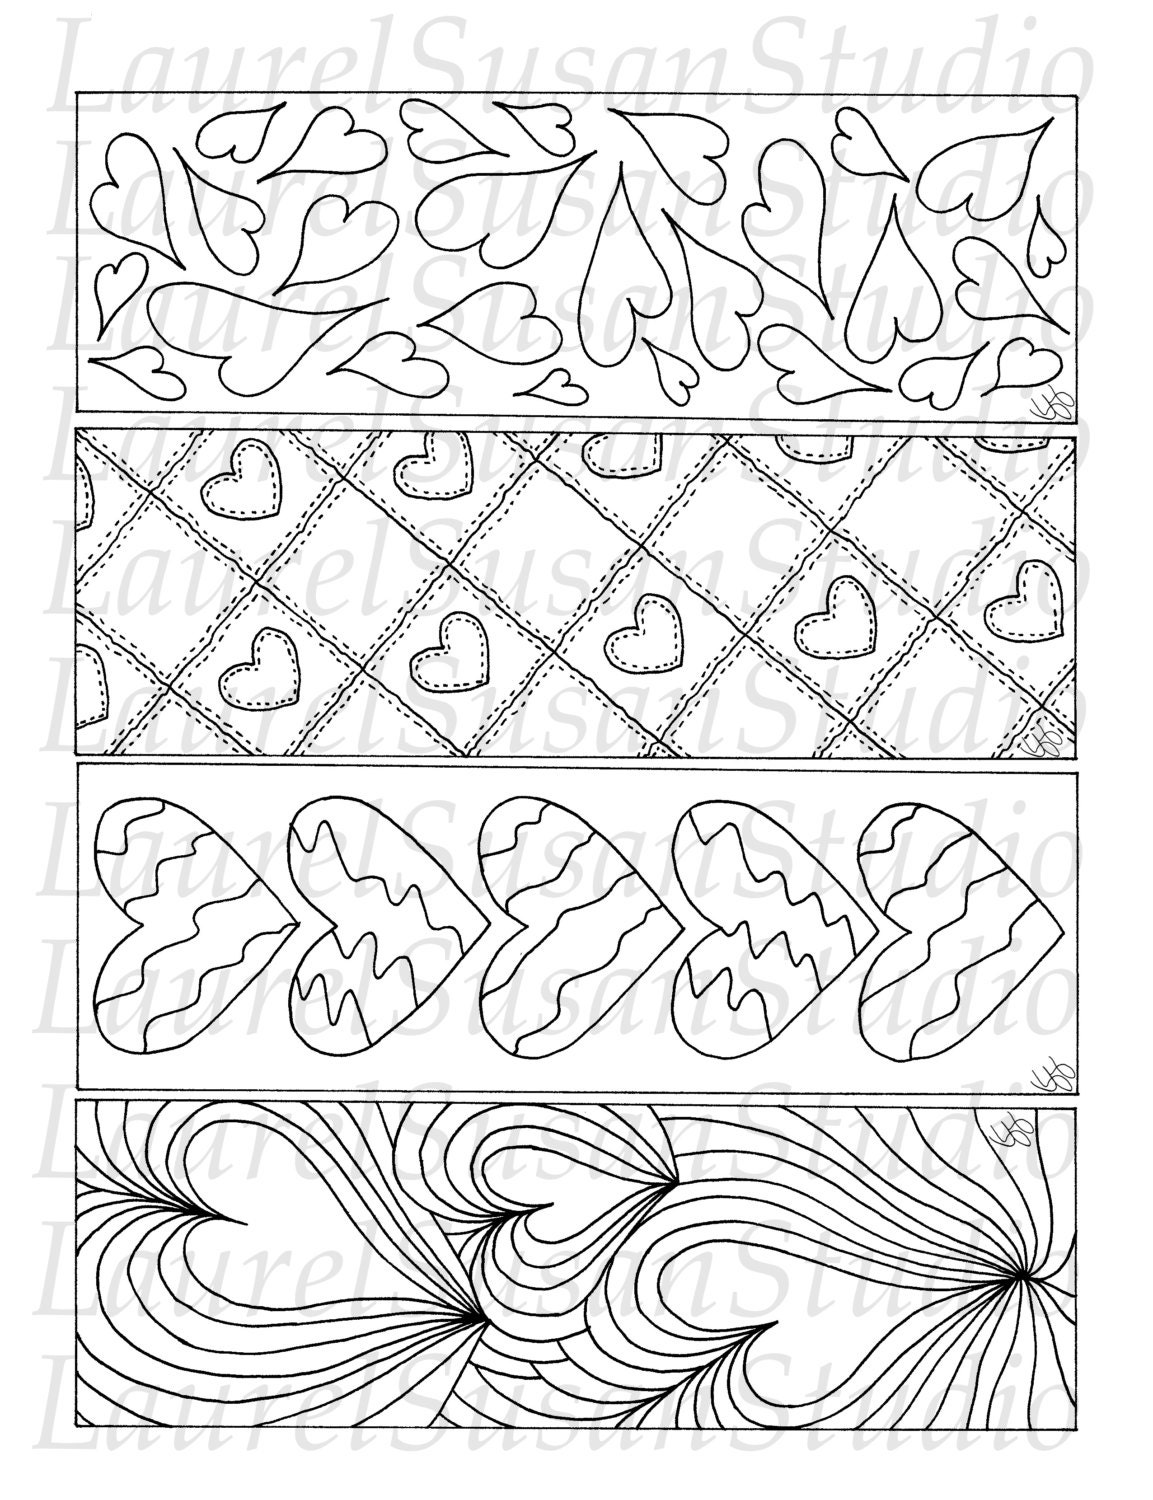 Bookmark - Free Coloring Pages